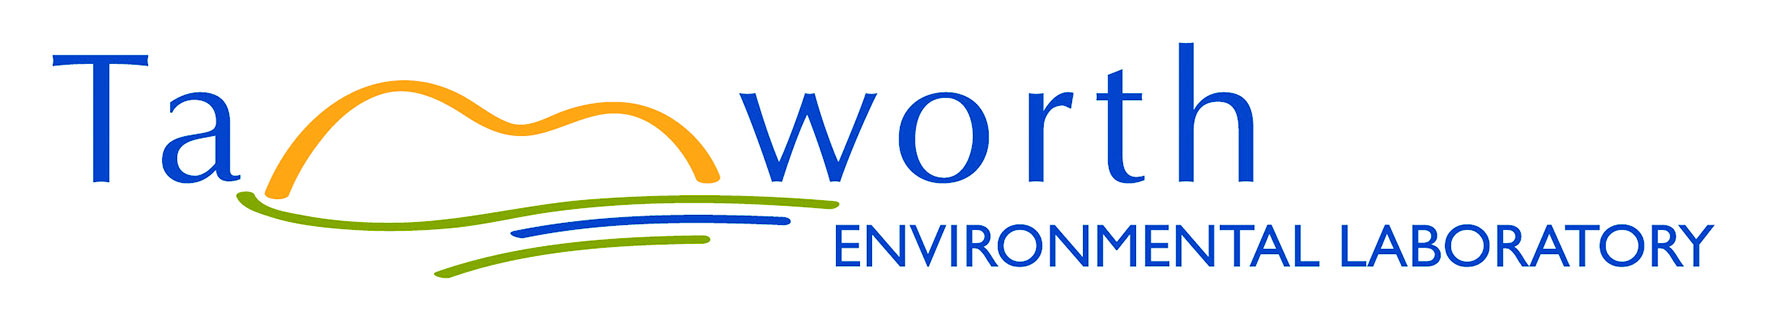 tamworth environmental laboratory